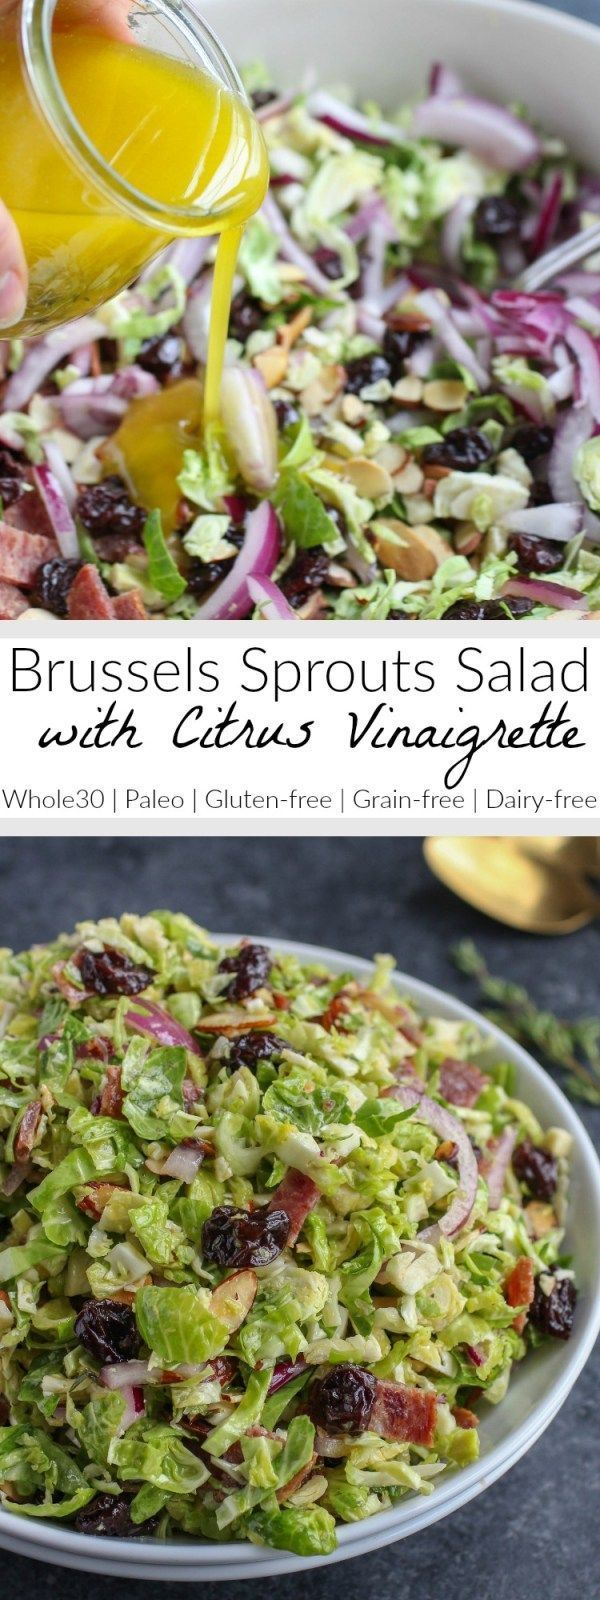 Brussels Sprouts Salad with Citrus Vinaigrette   Shredded Brussels sprouts are a hearty stand in for lettuce in this delicious salad that's studded with toasted almonds, tart dried cherries and smoky bacon   Whole30   Paleo   Gluten-free   Dairy-free   http://therealfoodrds.com